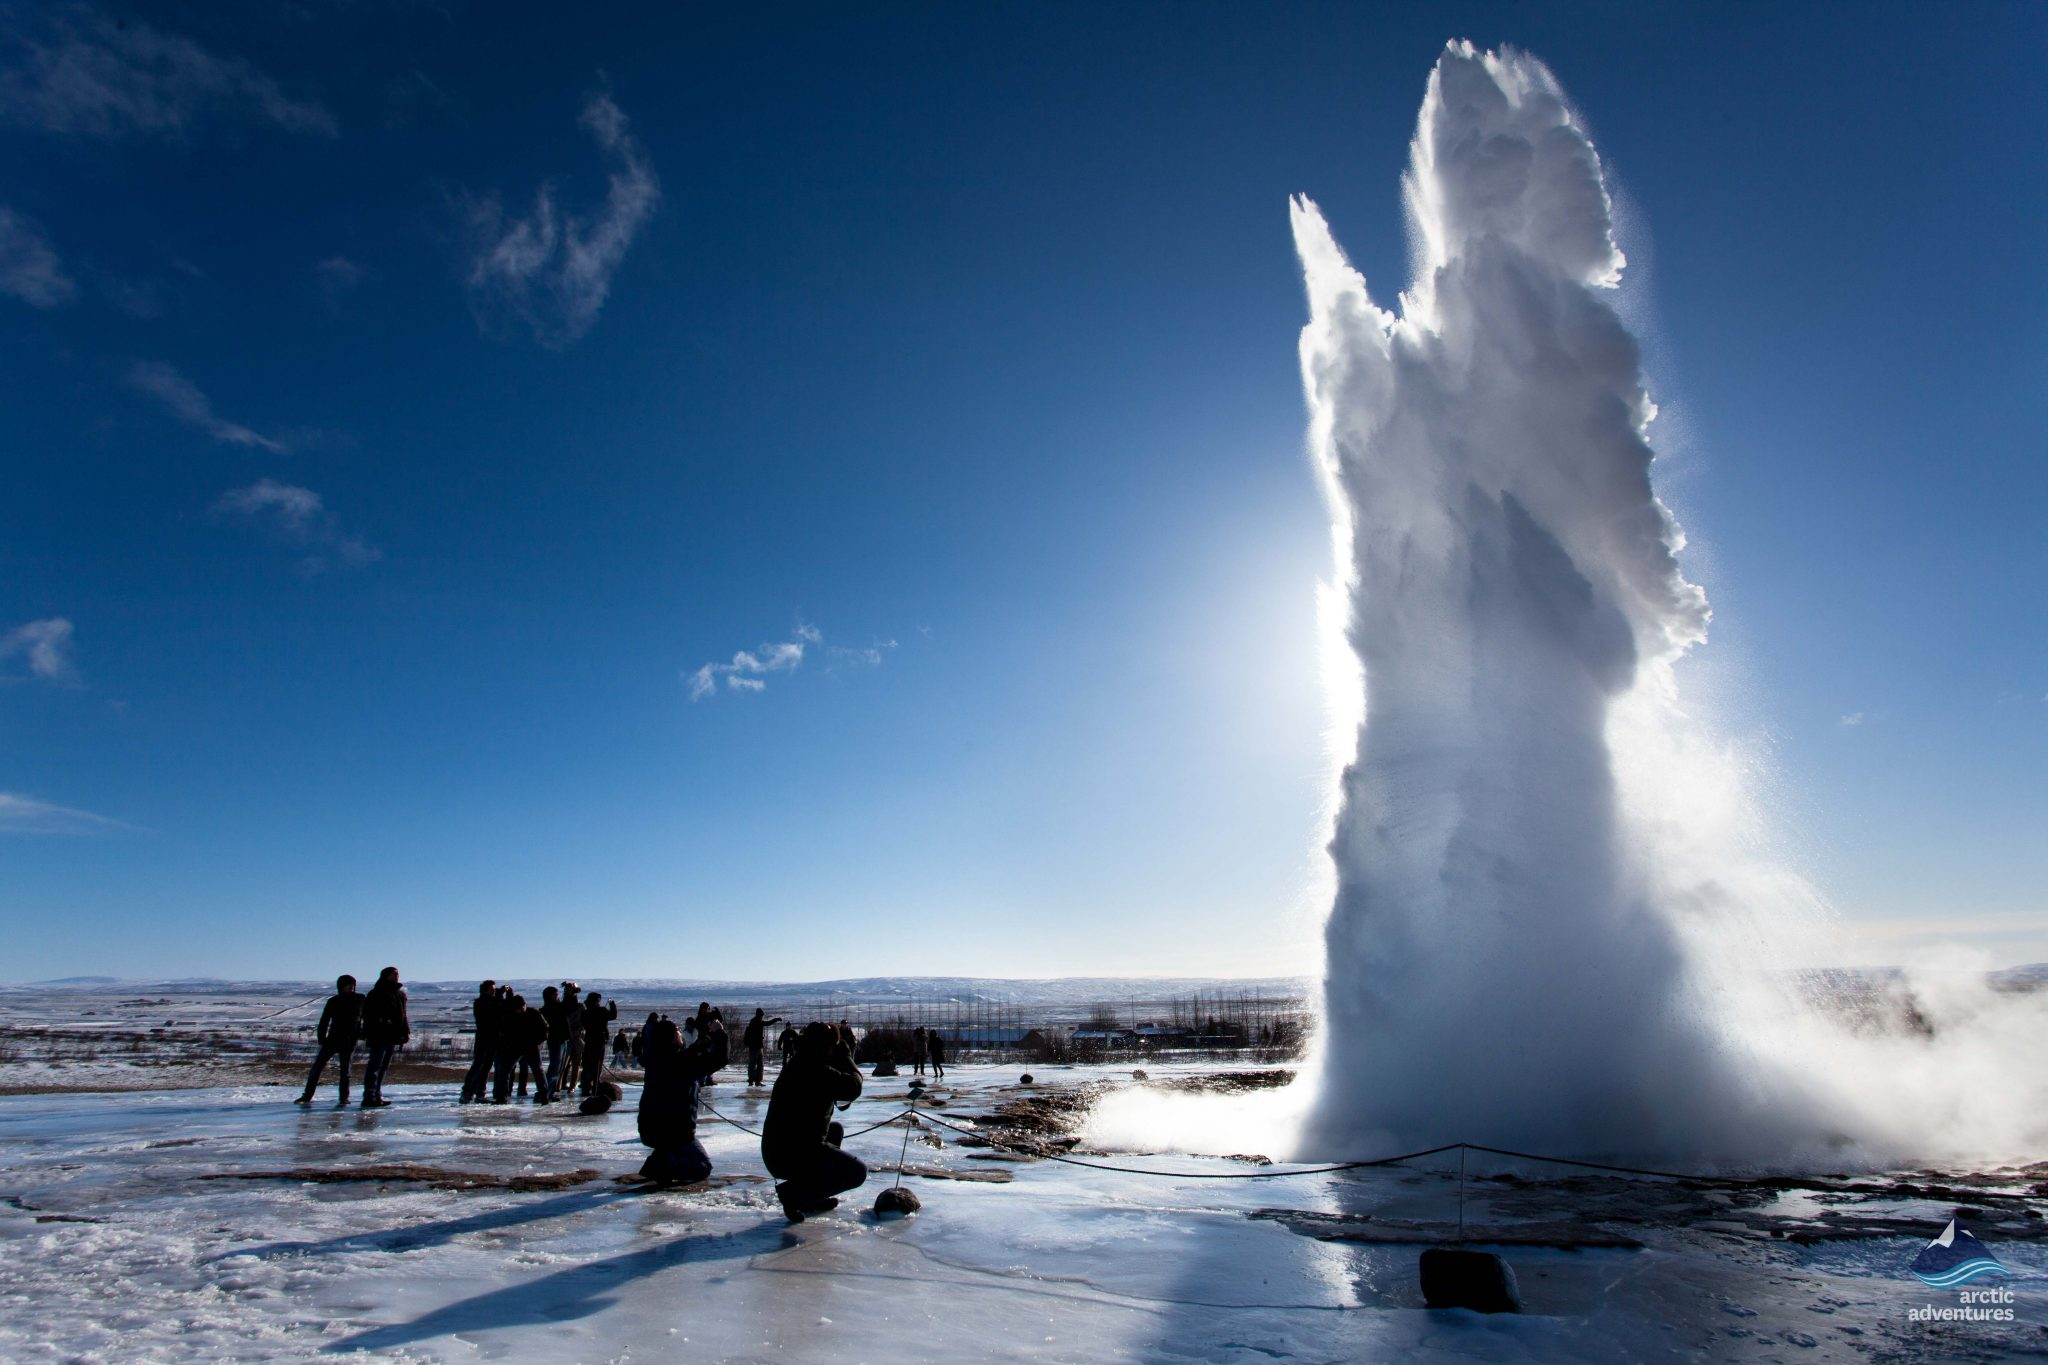 Strokkur Geyser Golden in Iceland